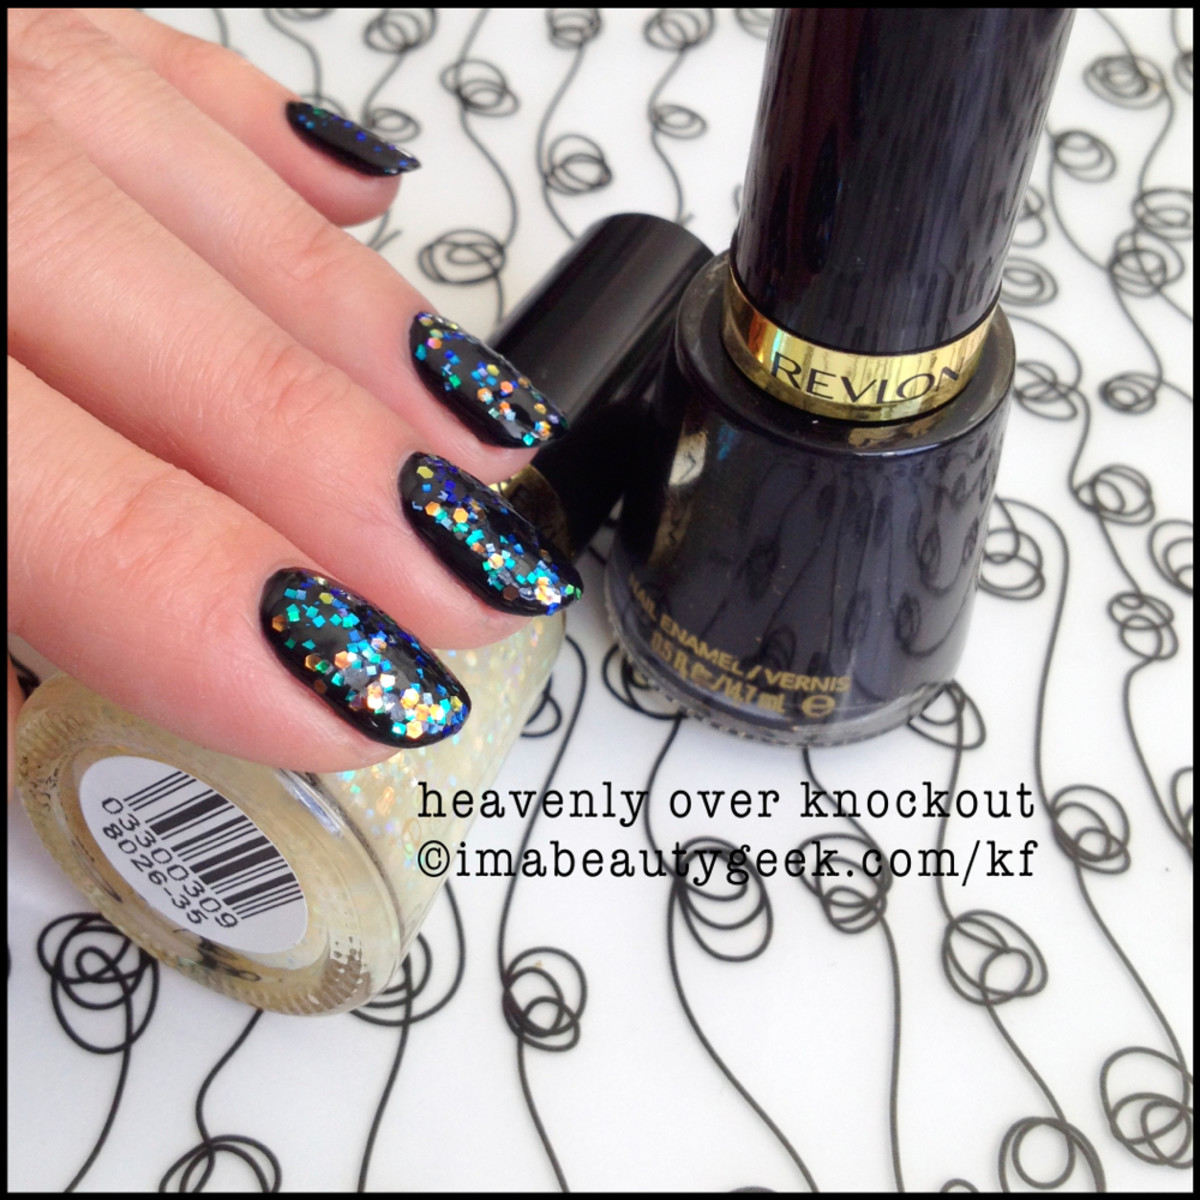 Revlon Heavenly over Knockout_2